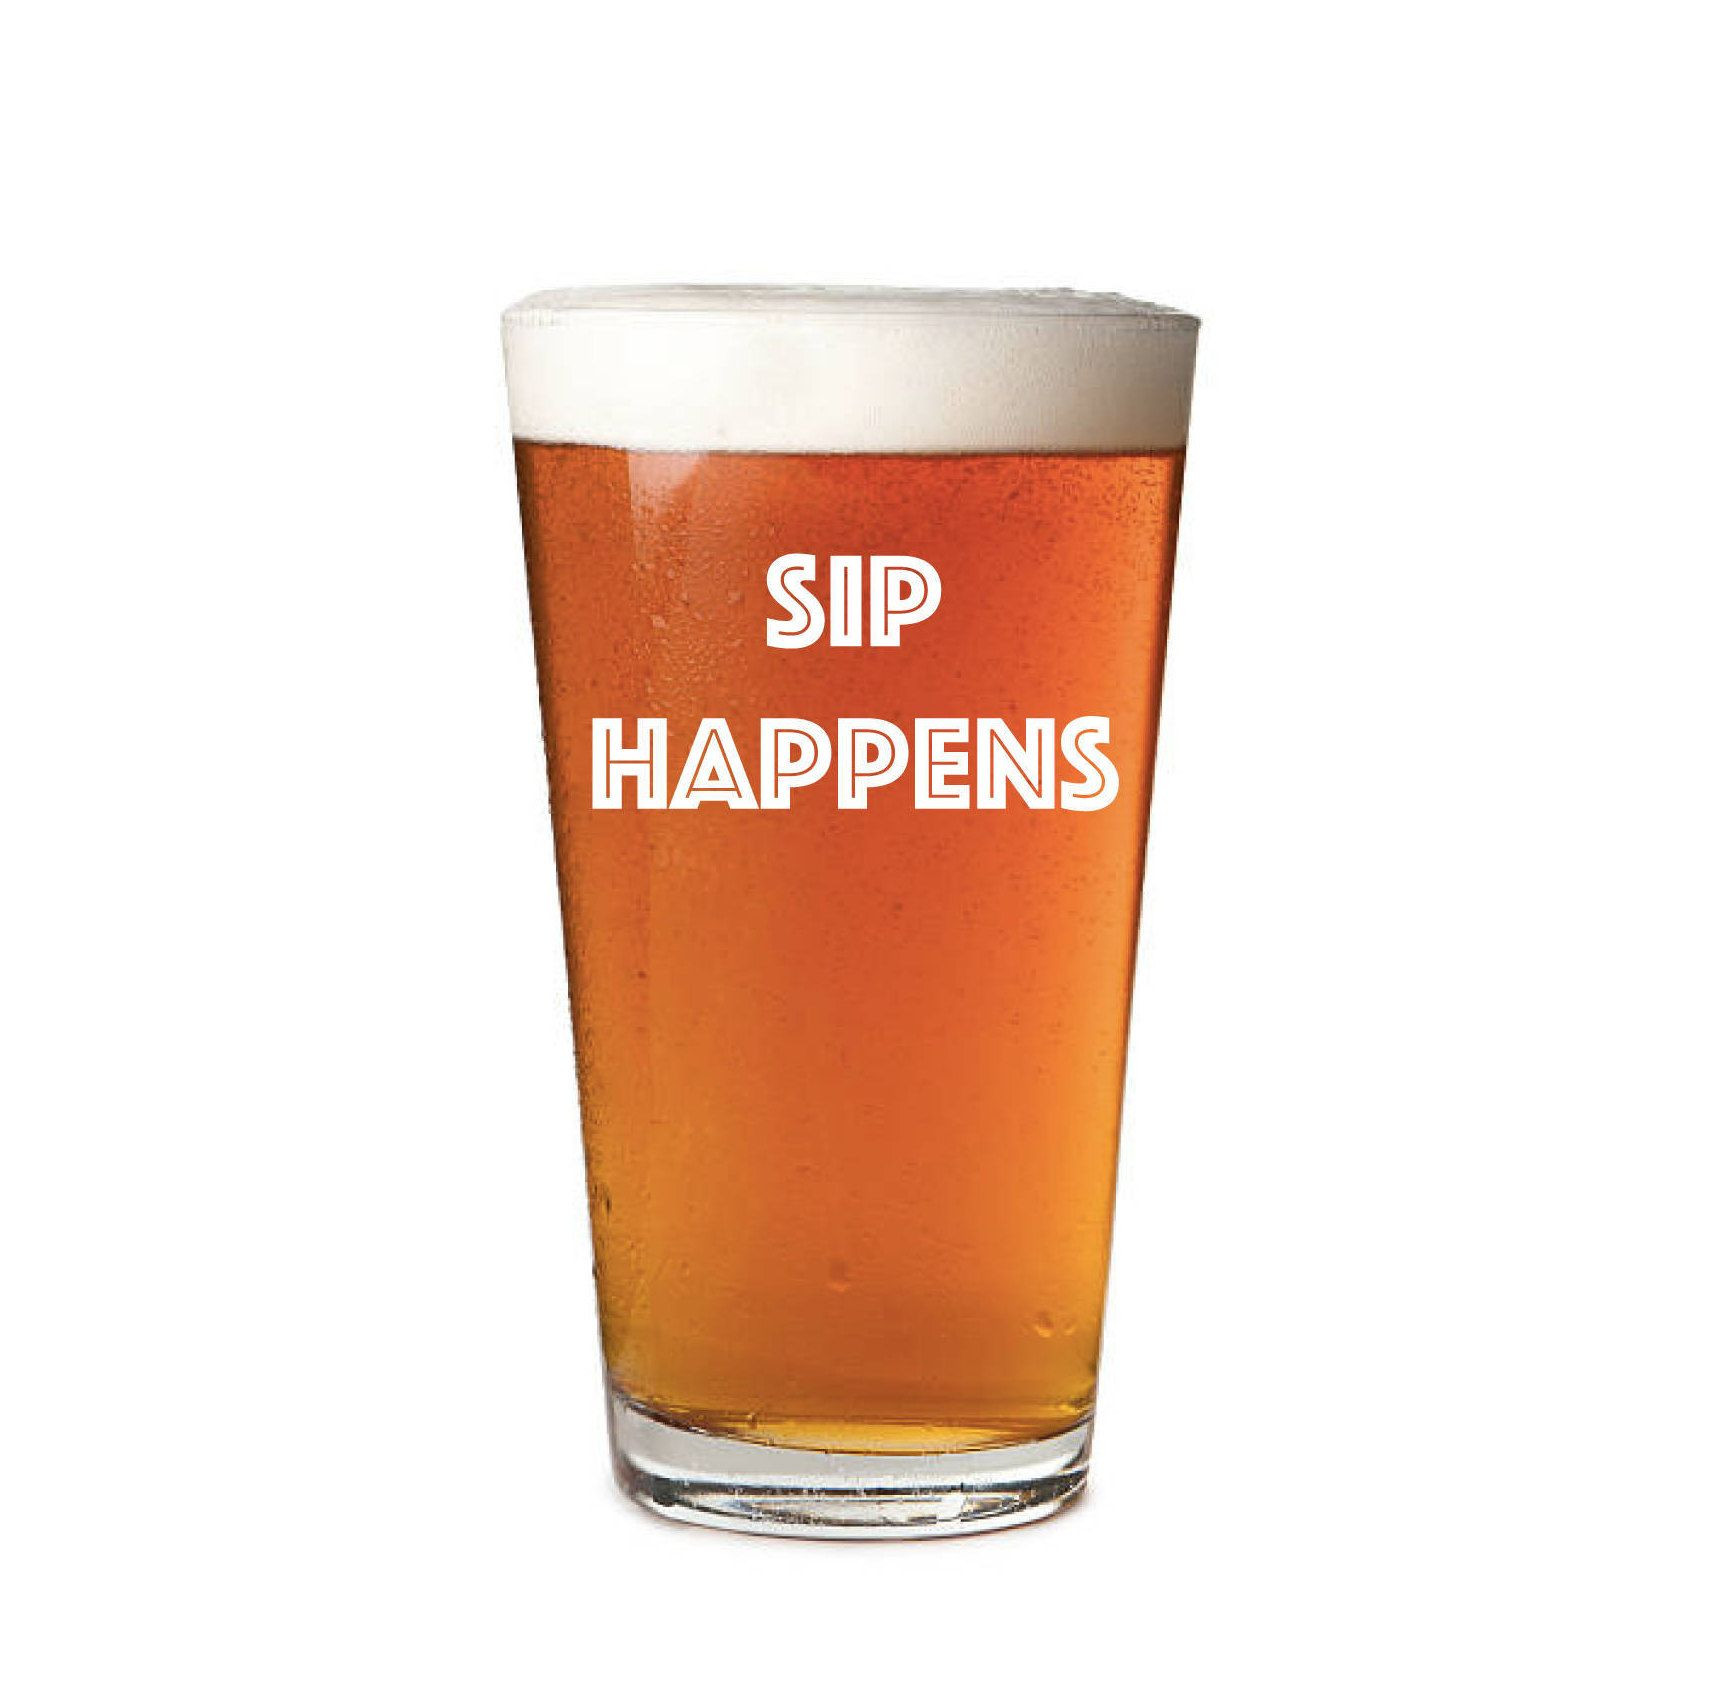 crystal vase engraved gift of sip happens funny pint glass inappropriate man cave present pertaining to sip happens funny pint glass inappropriate man cave present custom engraved bachelor beer glassware